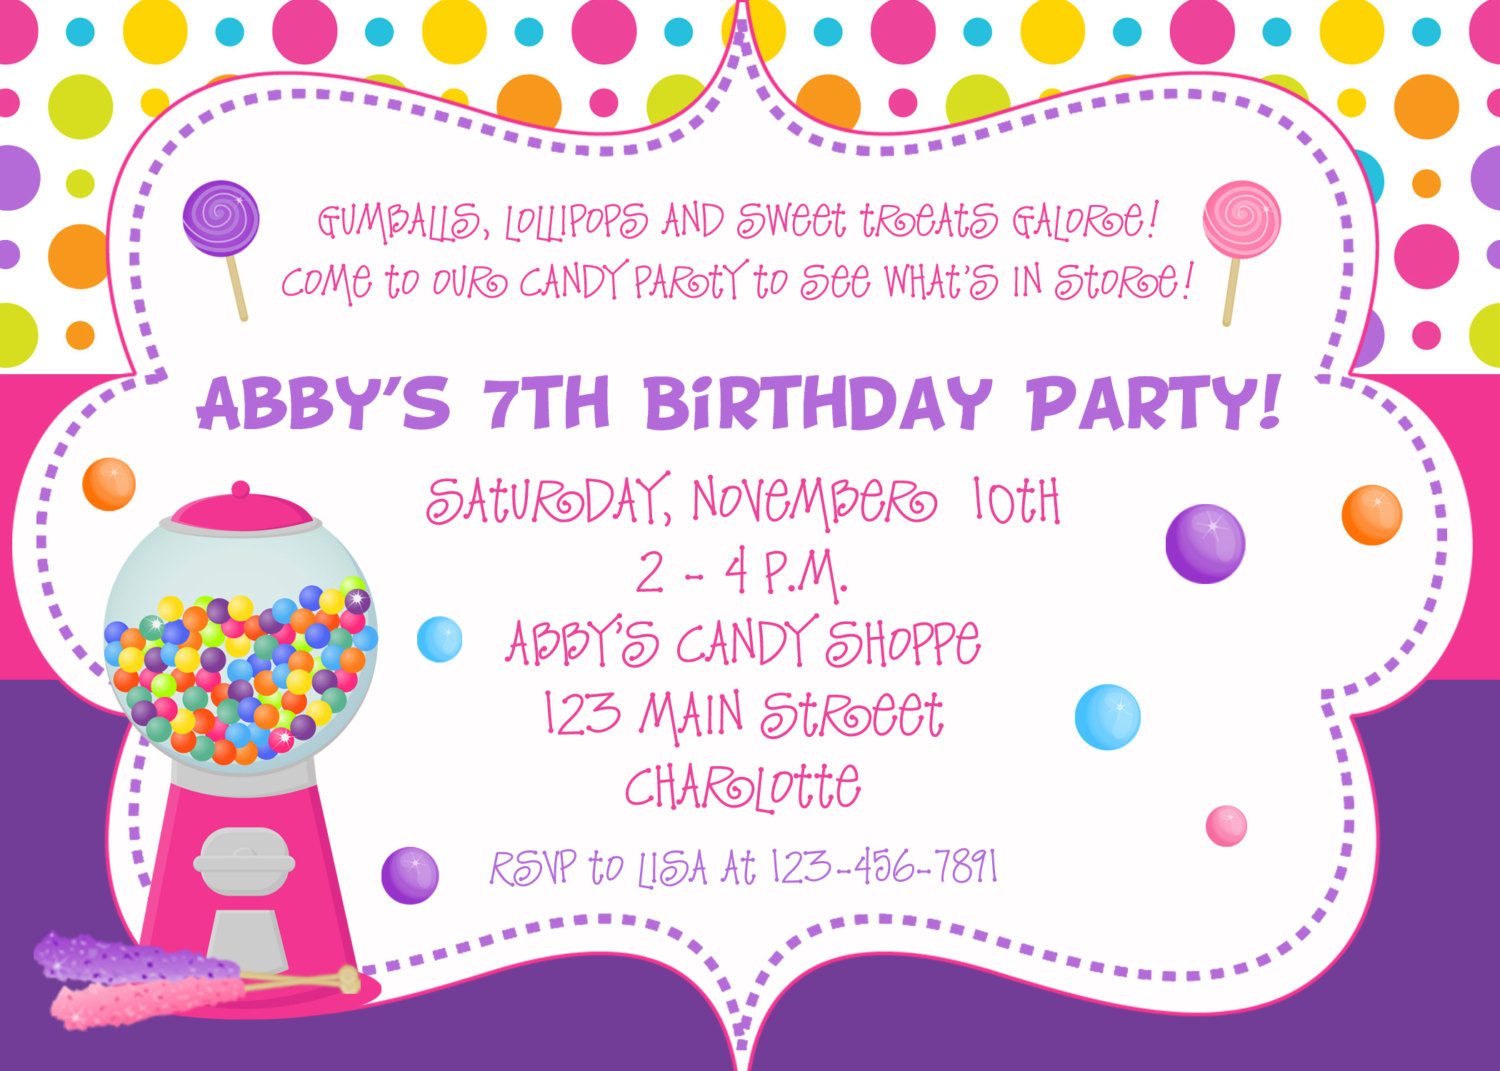 Best ideas about Invitation For Birthday Party . Save or Pin Candy Birthday Party Invitation candy party by Now.